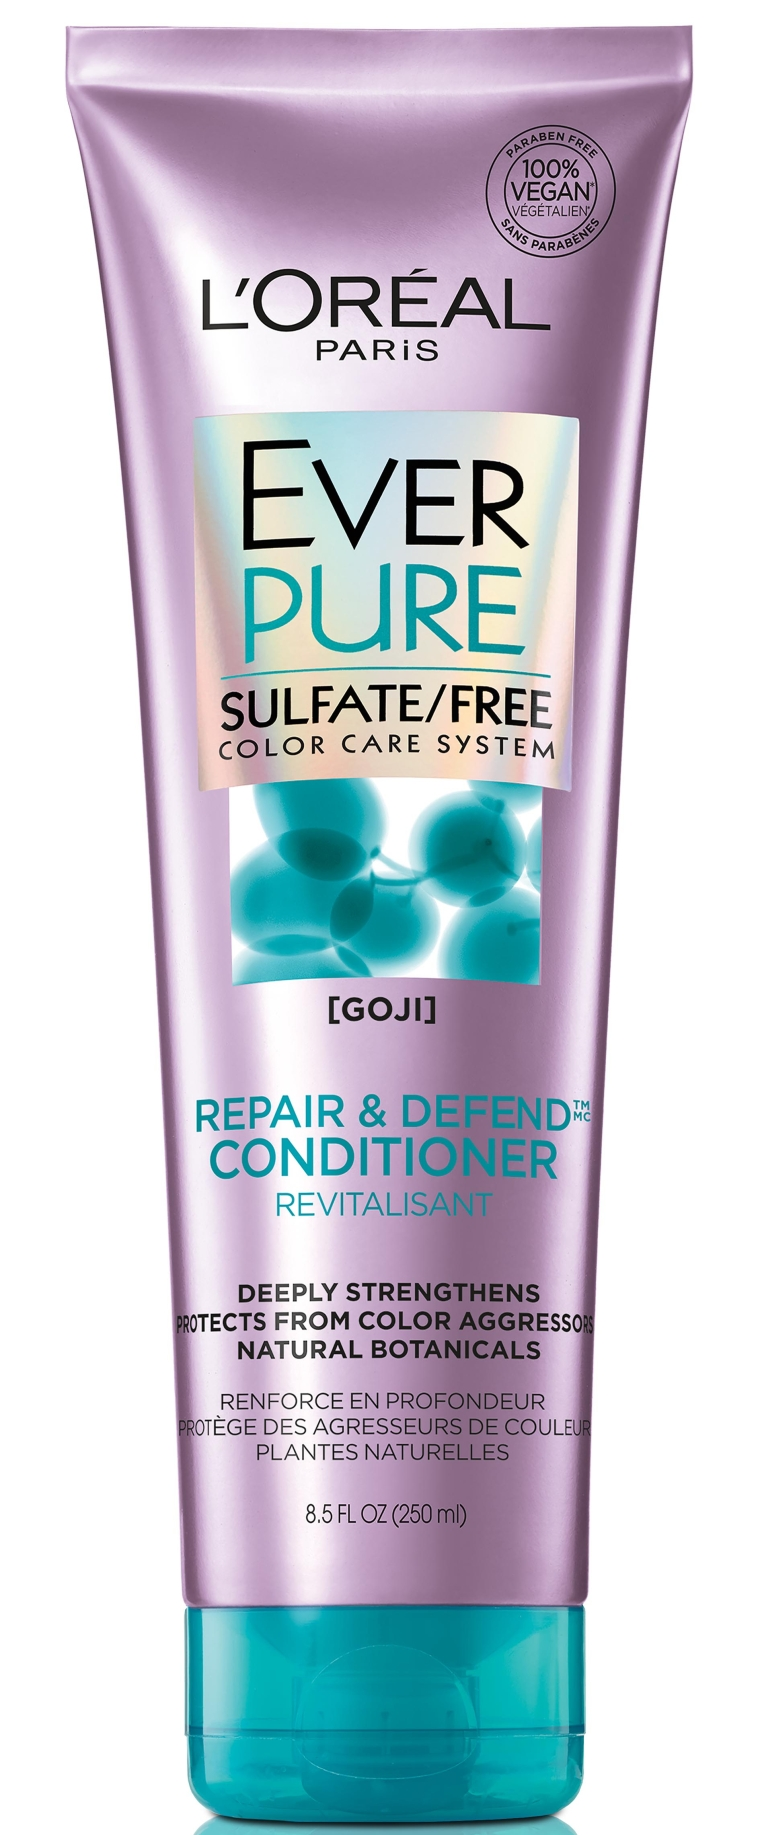 Ever Pure Defender Conditioner